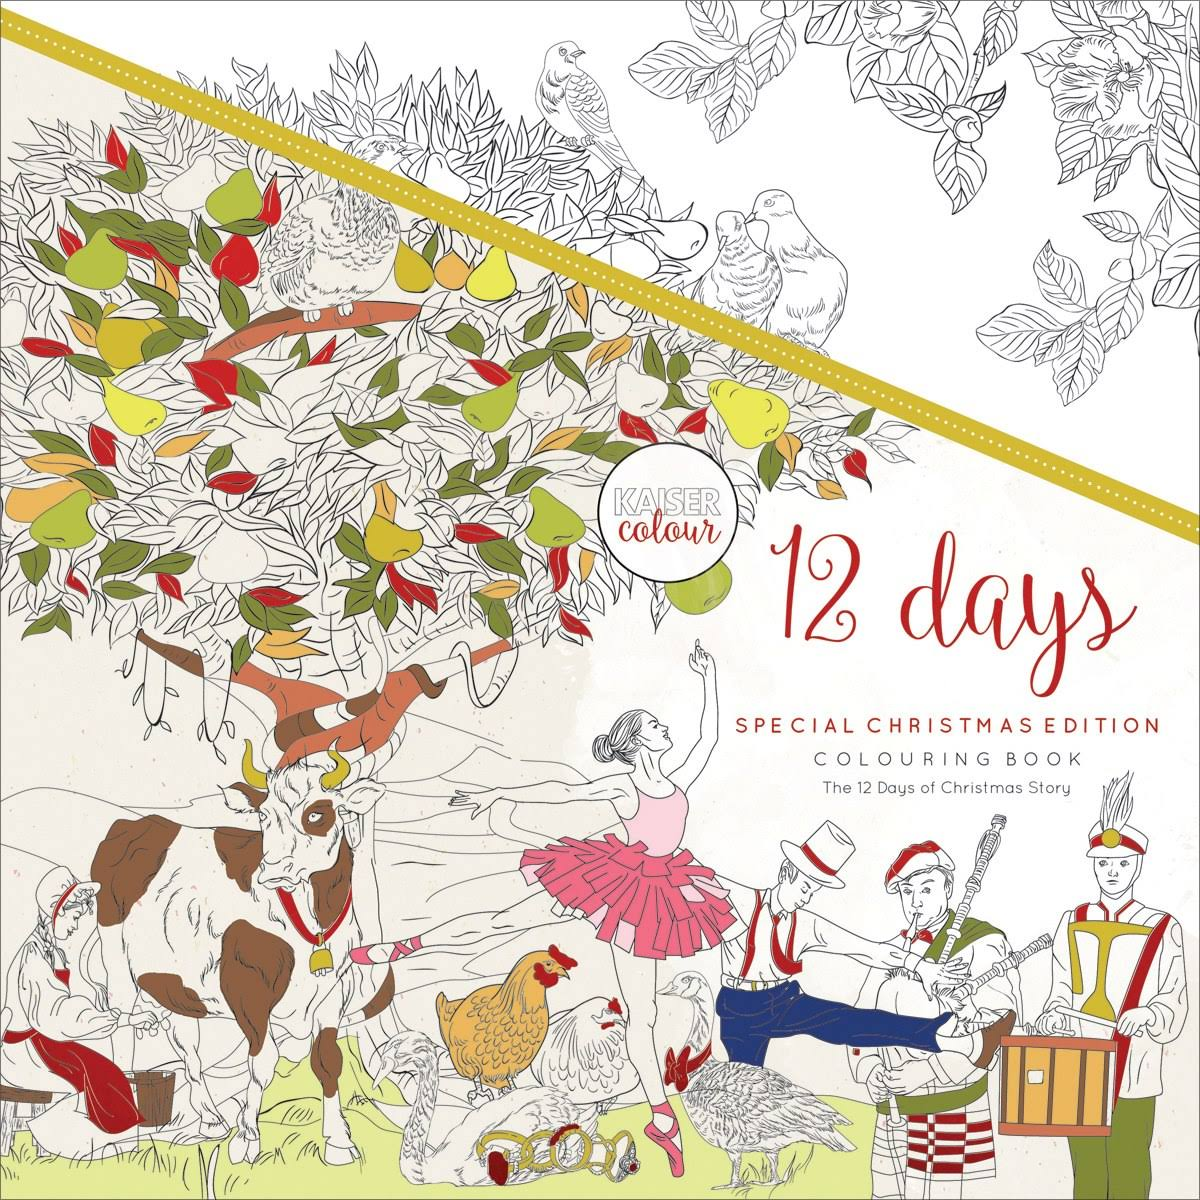 12 Days: Kaisercolour: Colouring Book [Book]